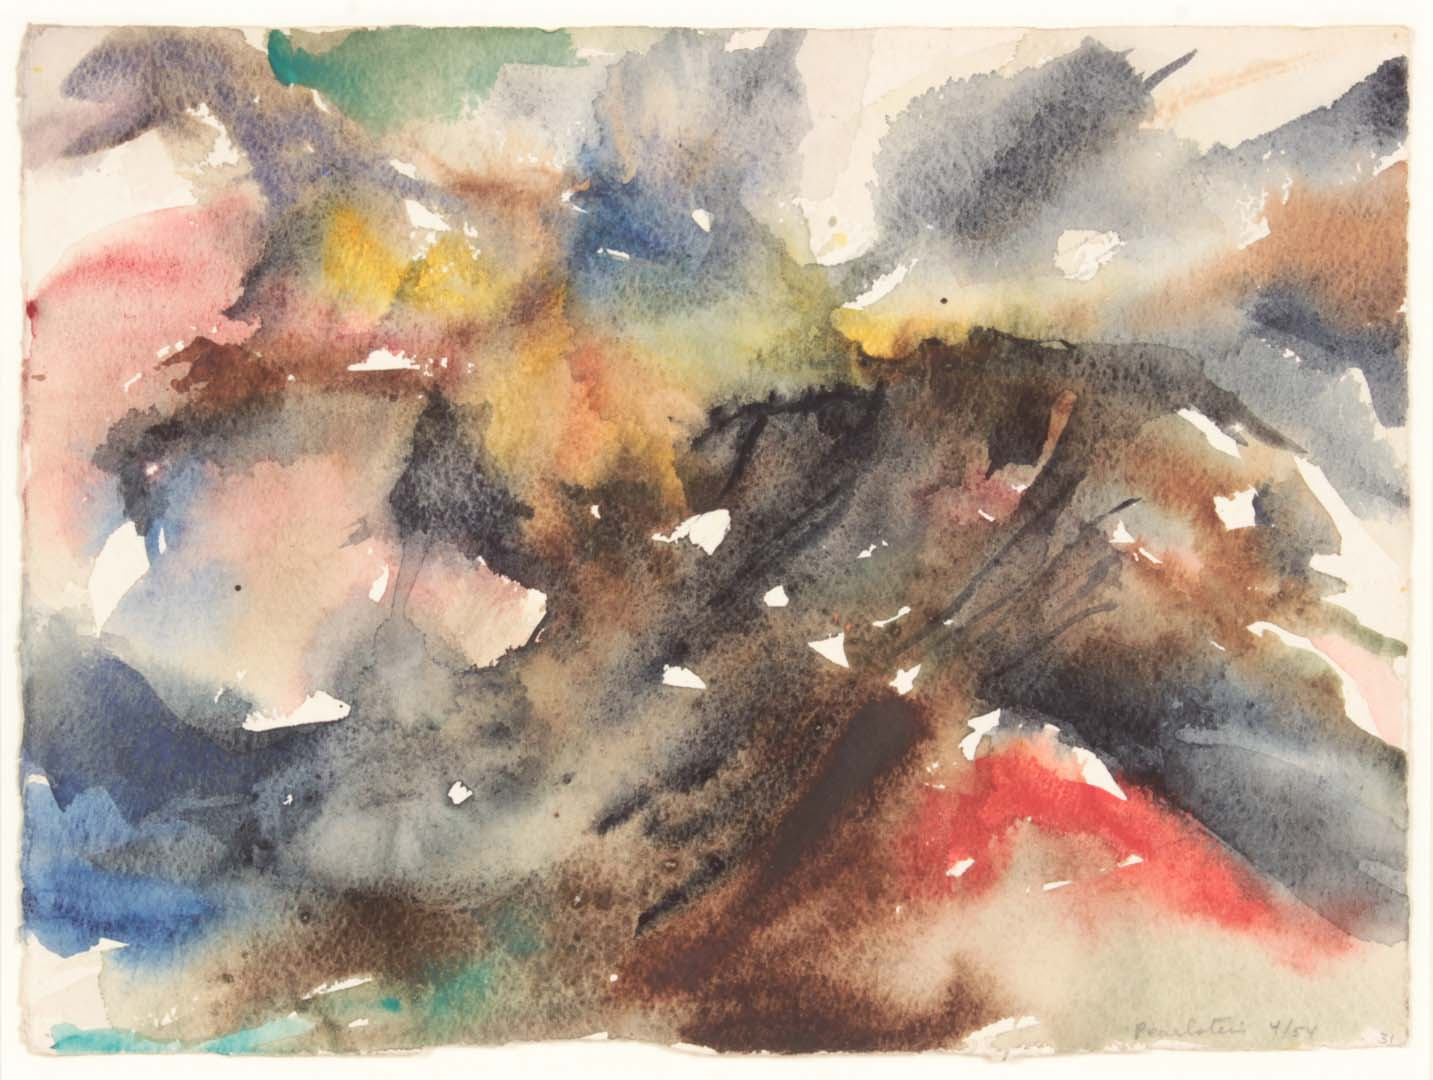 1954 Montauk Rocks #8 Watercolor on Paper 7.375 x 10